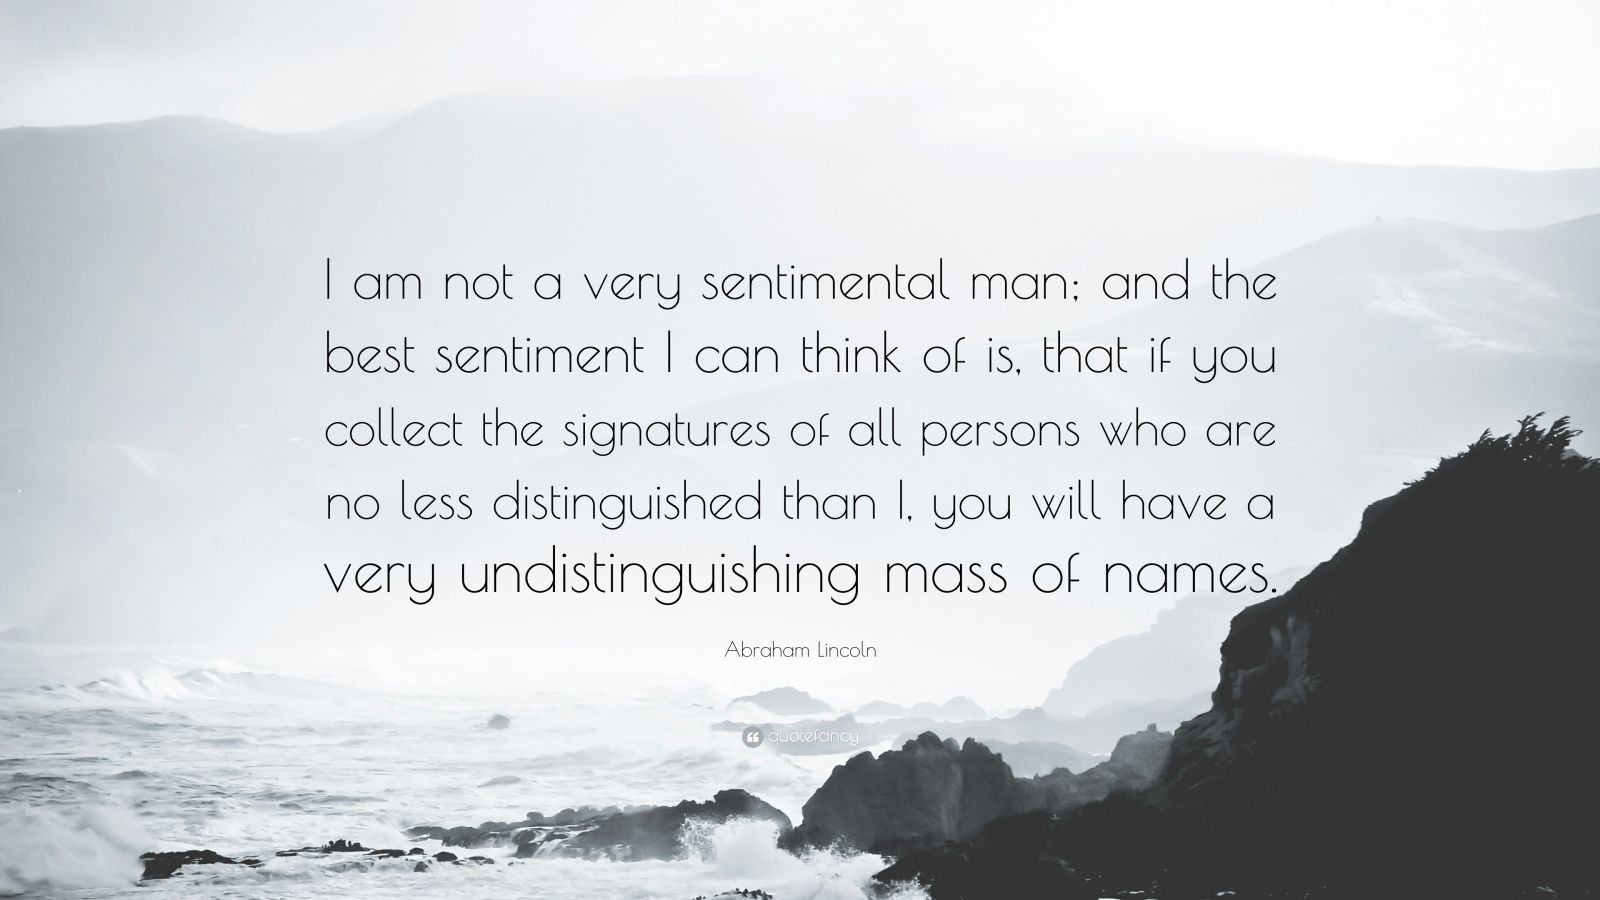 """Abraham Lincoln Quote: """"I am not a very sentimental man; and the best sentiment I can think of is, that if you collect the signatures of all persons who are no less distinguished than I, you will have a very undistinguishing mass of names."""""""